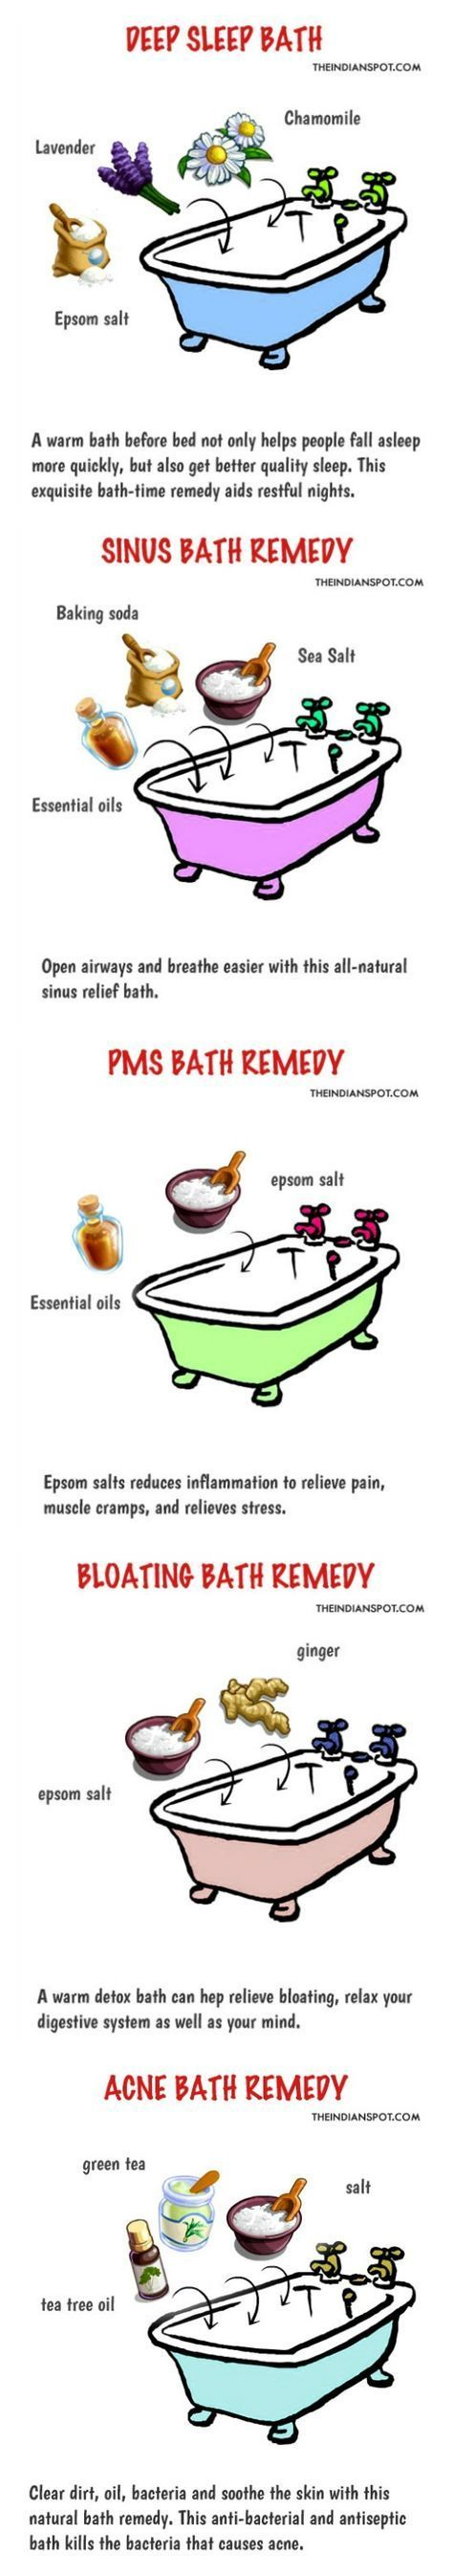 They forgot a drop of blood of the innocent for the PMS bath